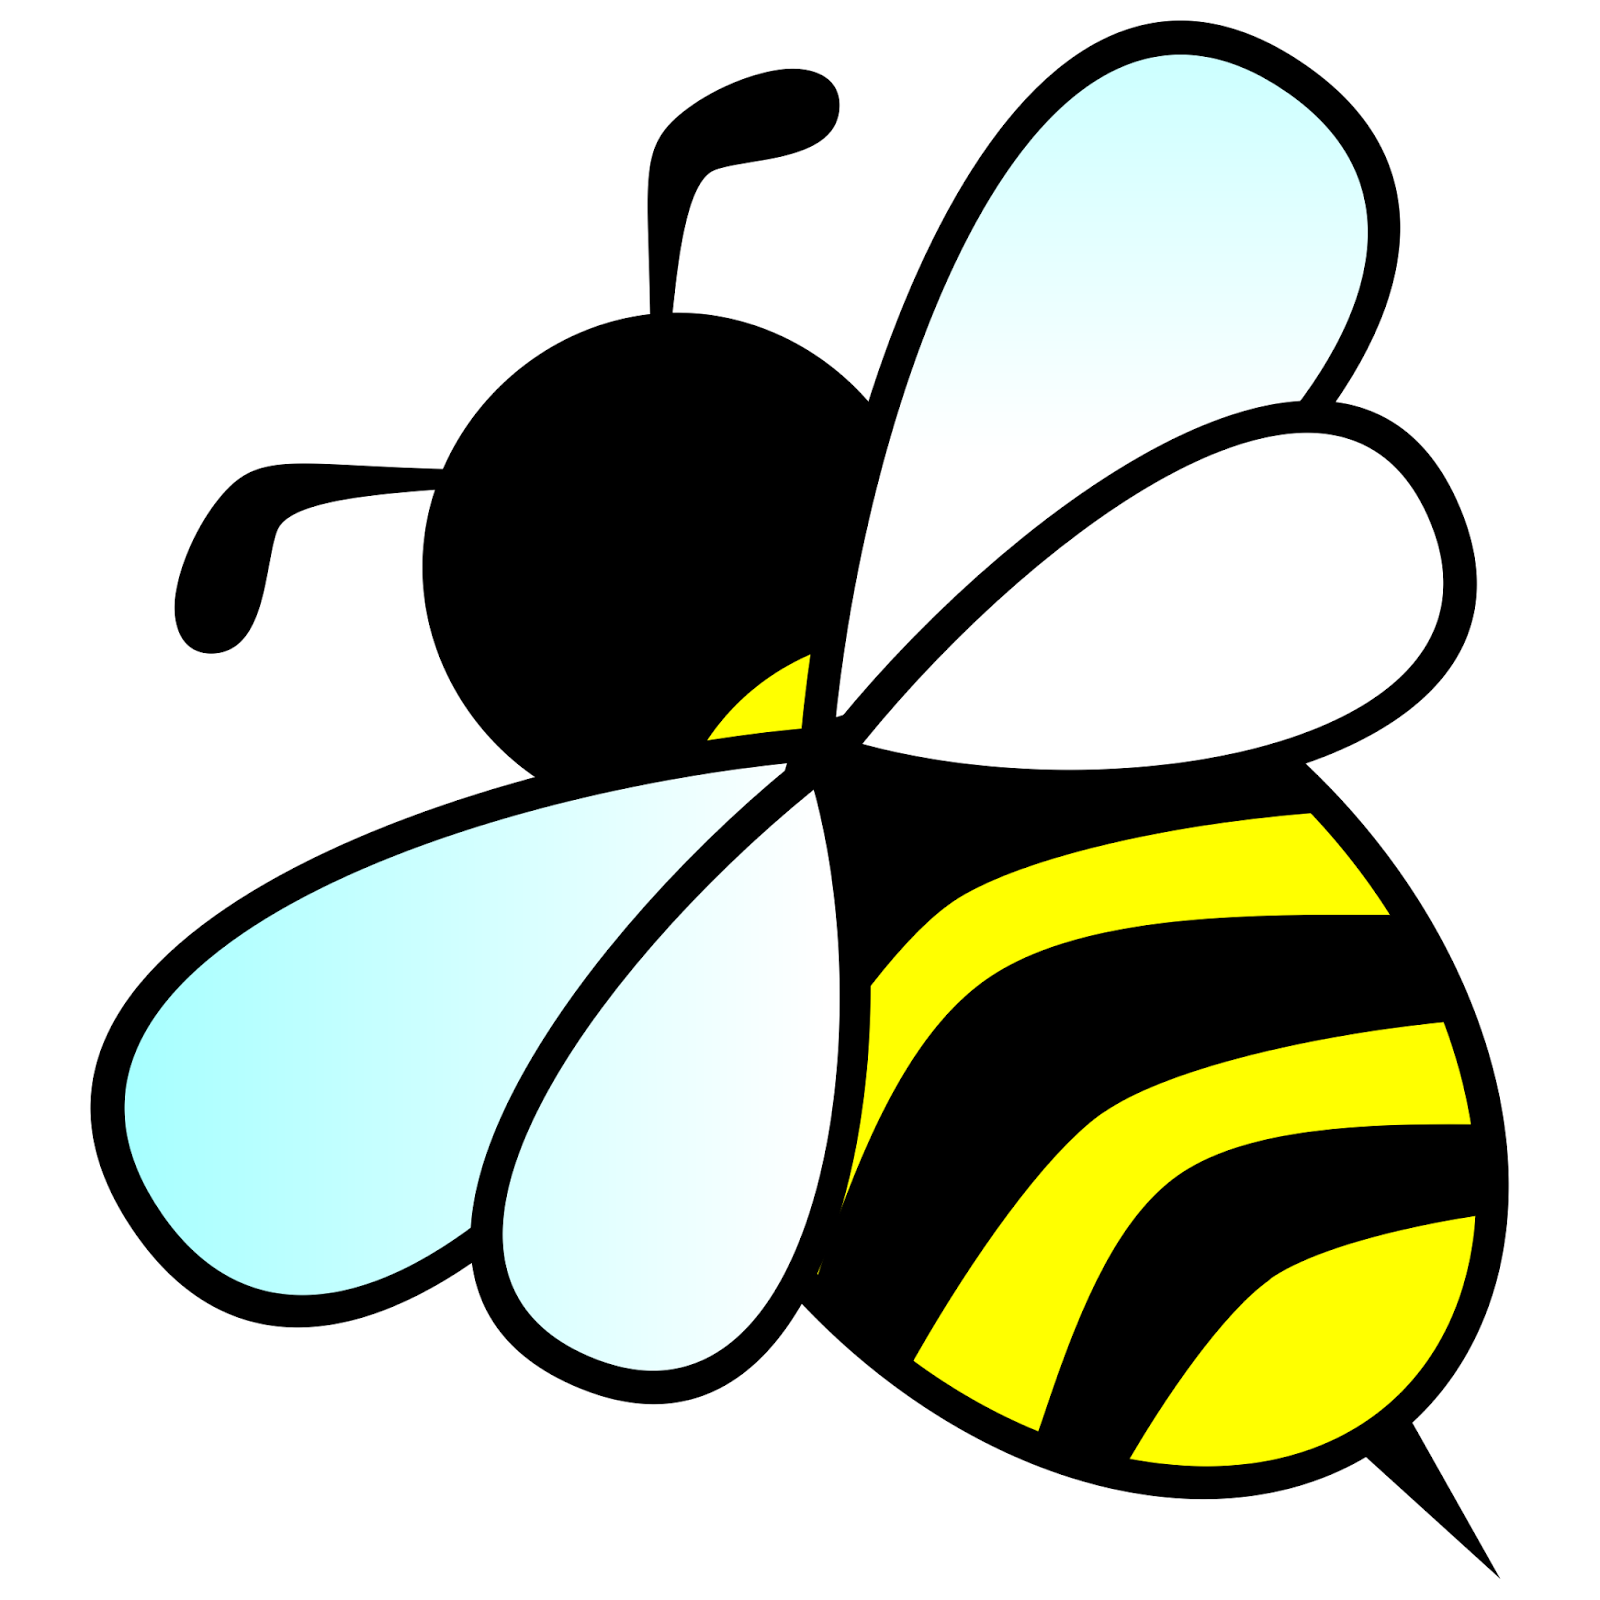 Bee clip art bumble bee. Silhouette at getdrawings com